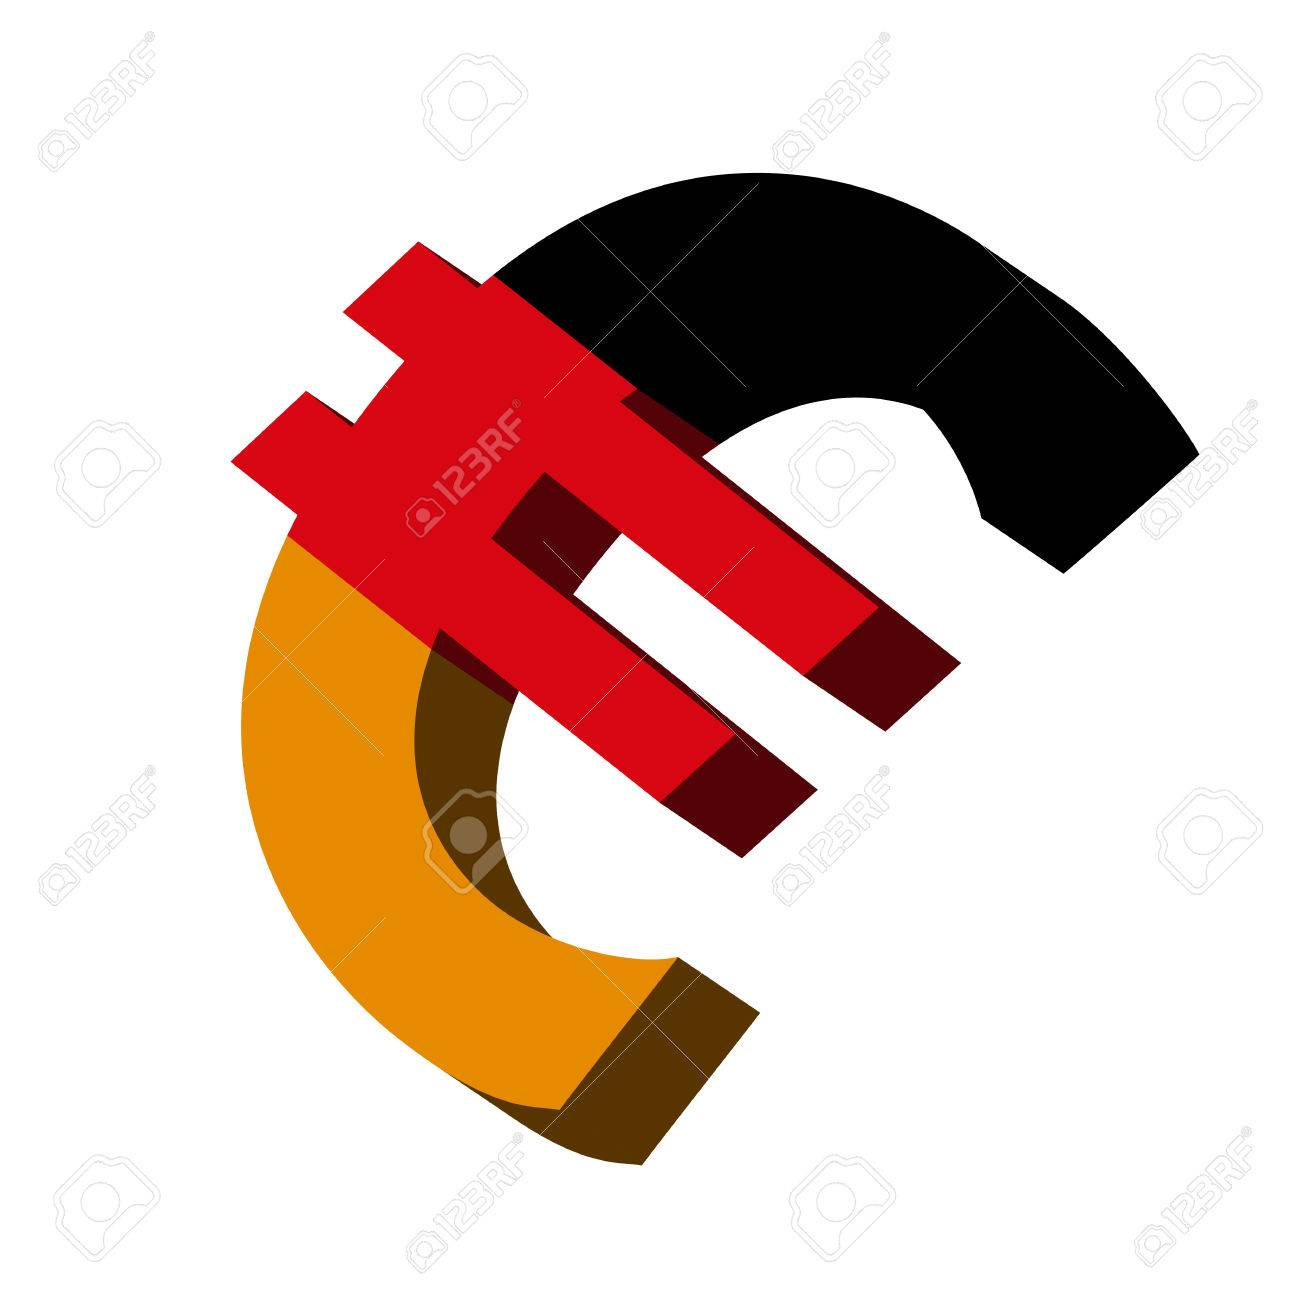 3d Illustration Of The Euro Symbol With Germany Flag Royalty Free